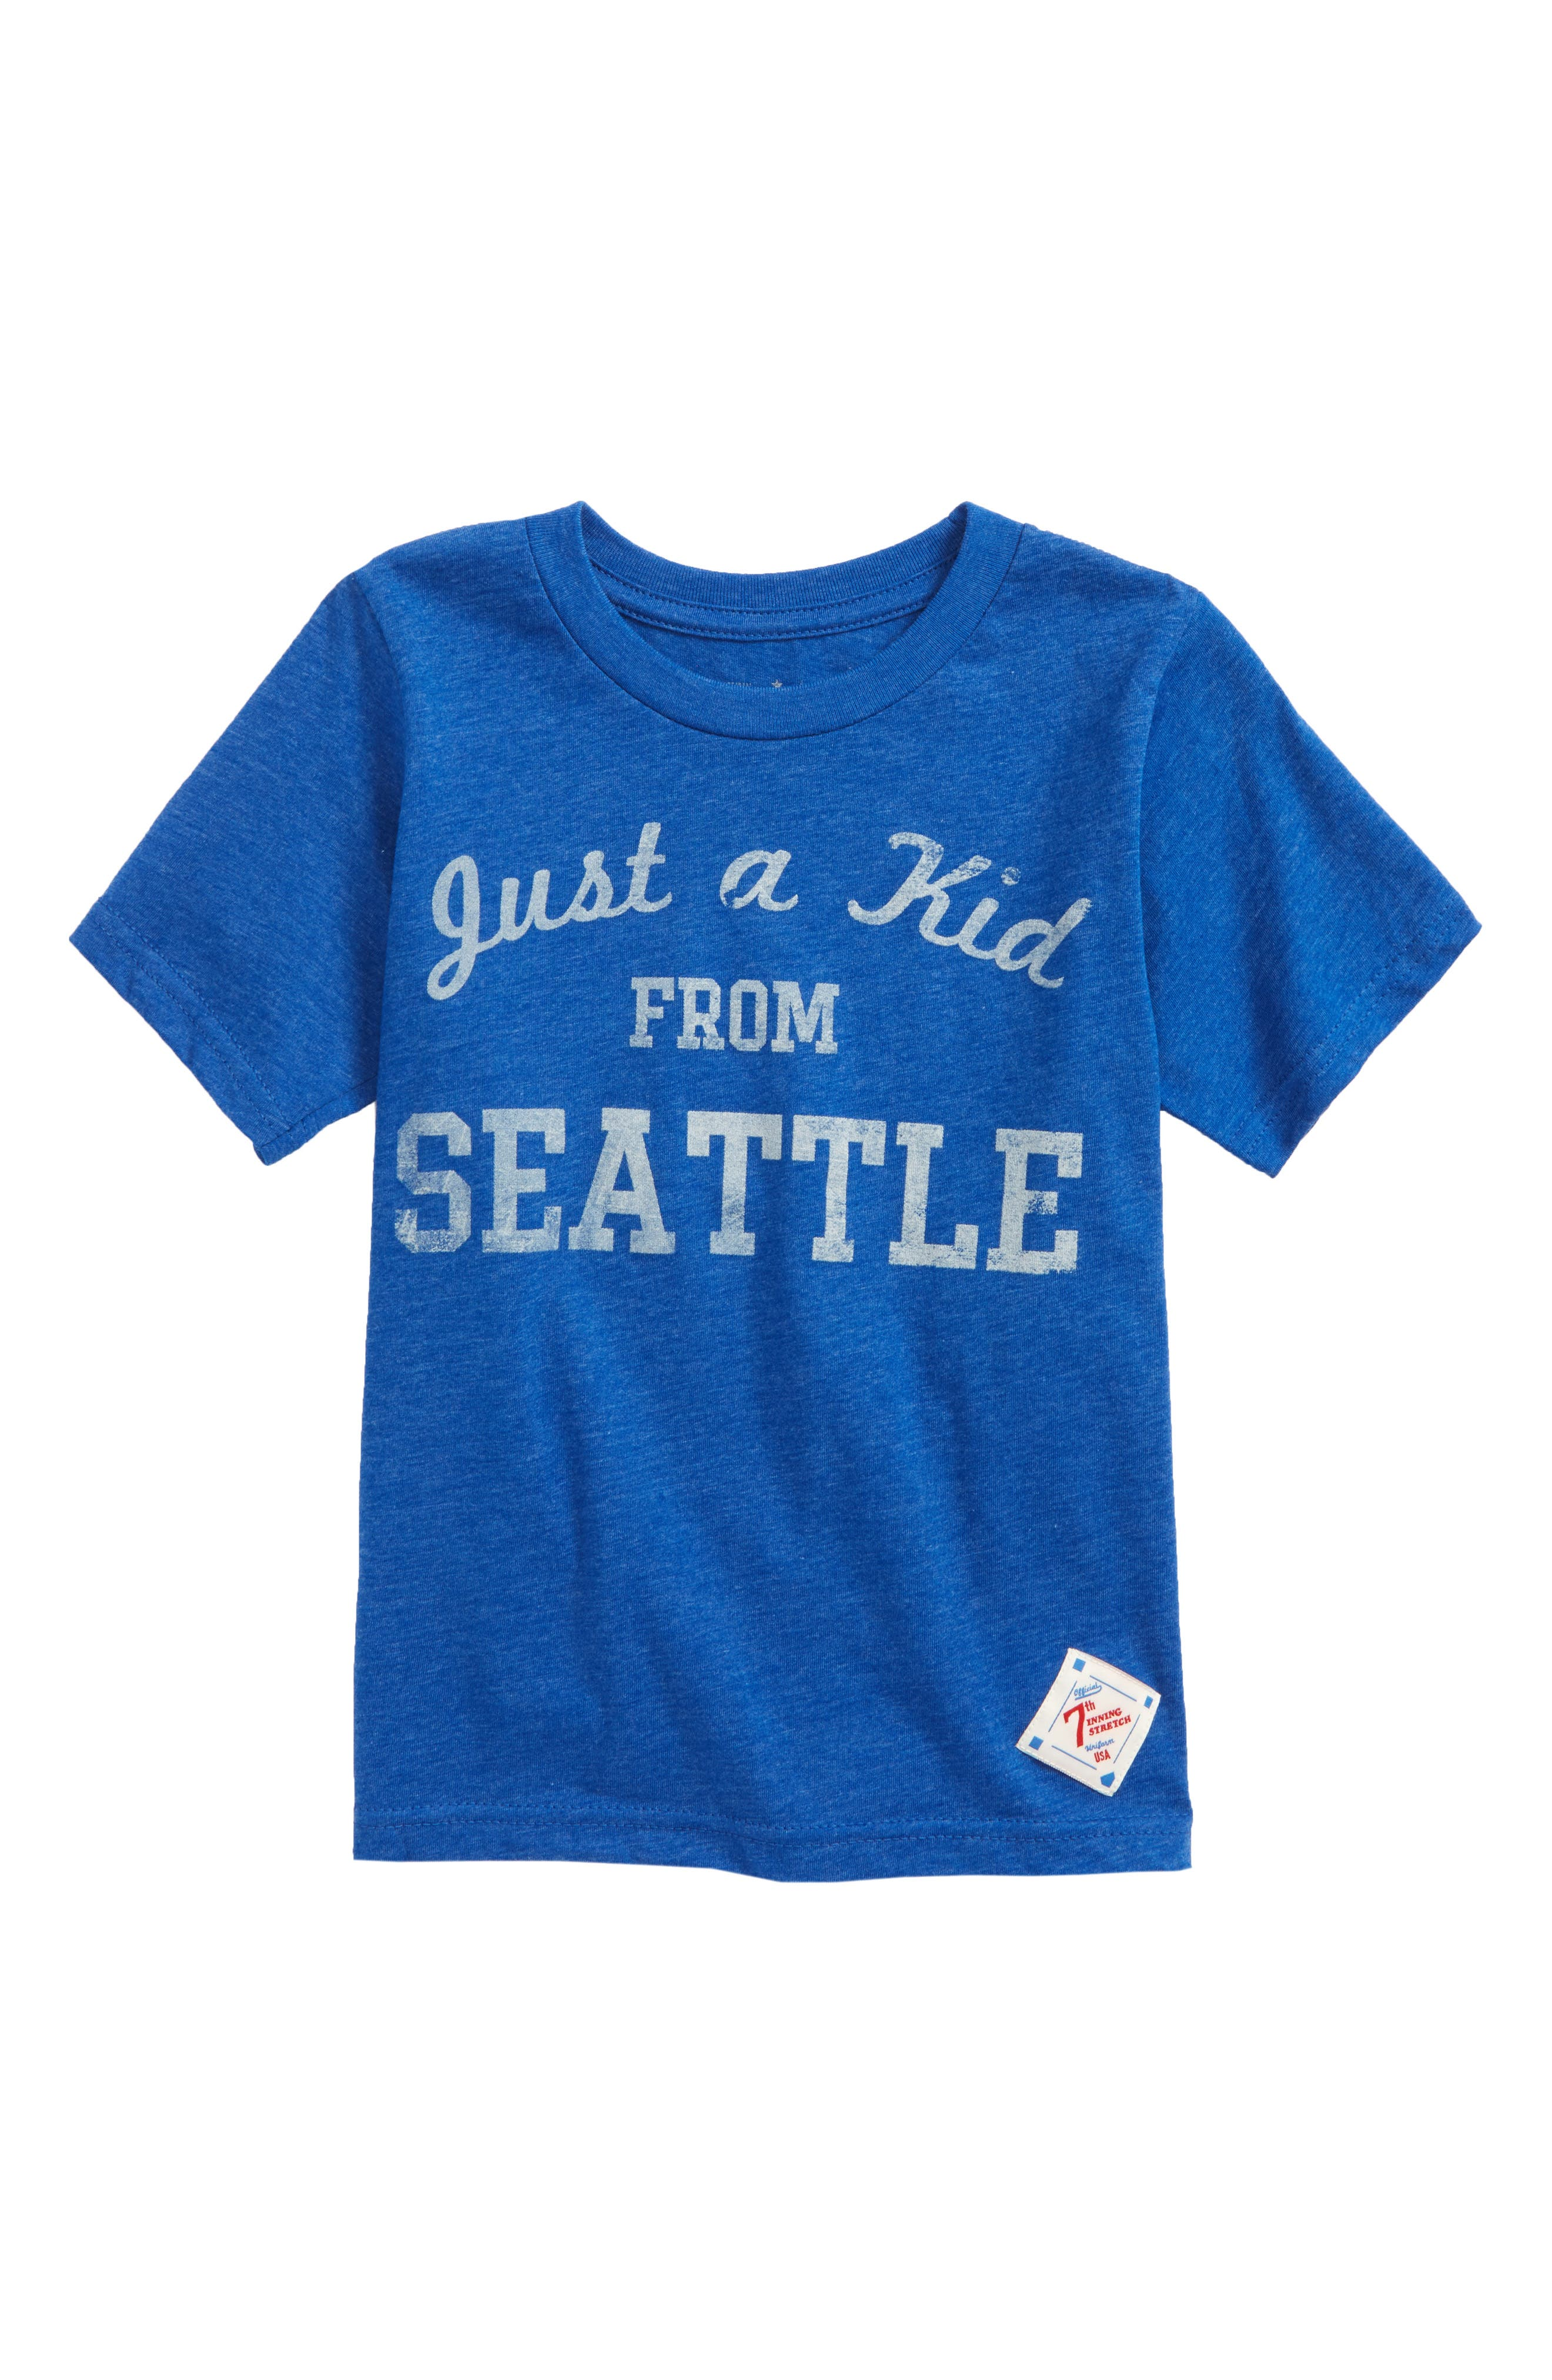 Just a Kid from Seattle Graphic T-Shirt,                             Main thumbnail 1, color,                             430